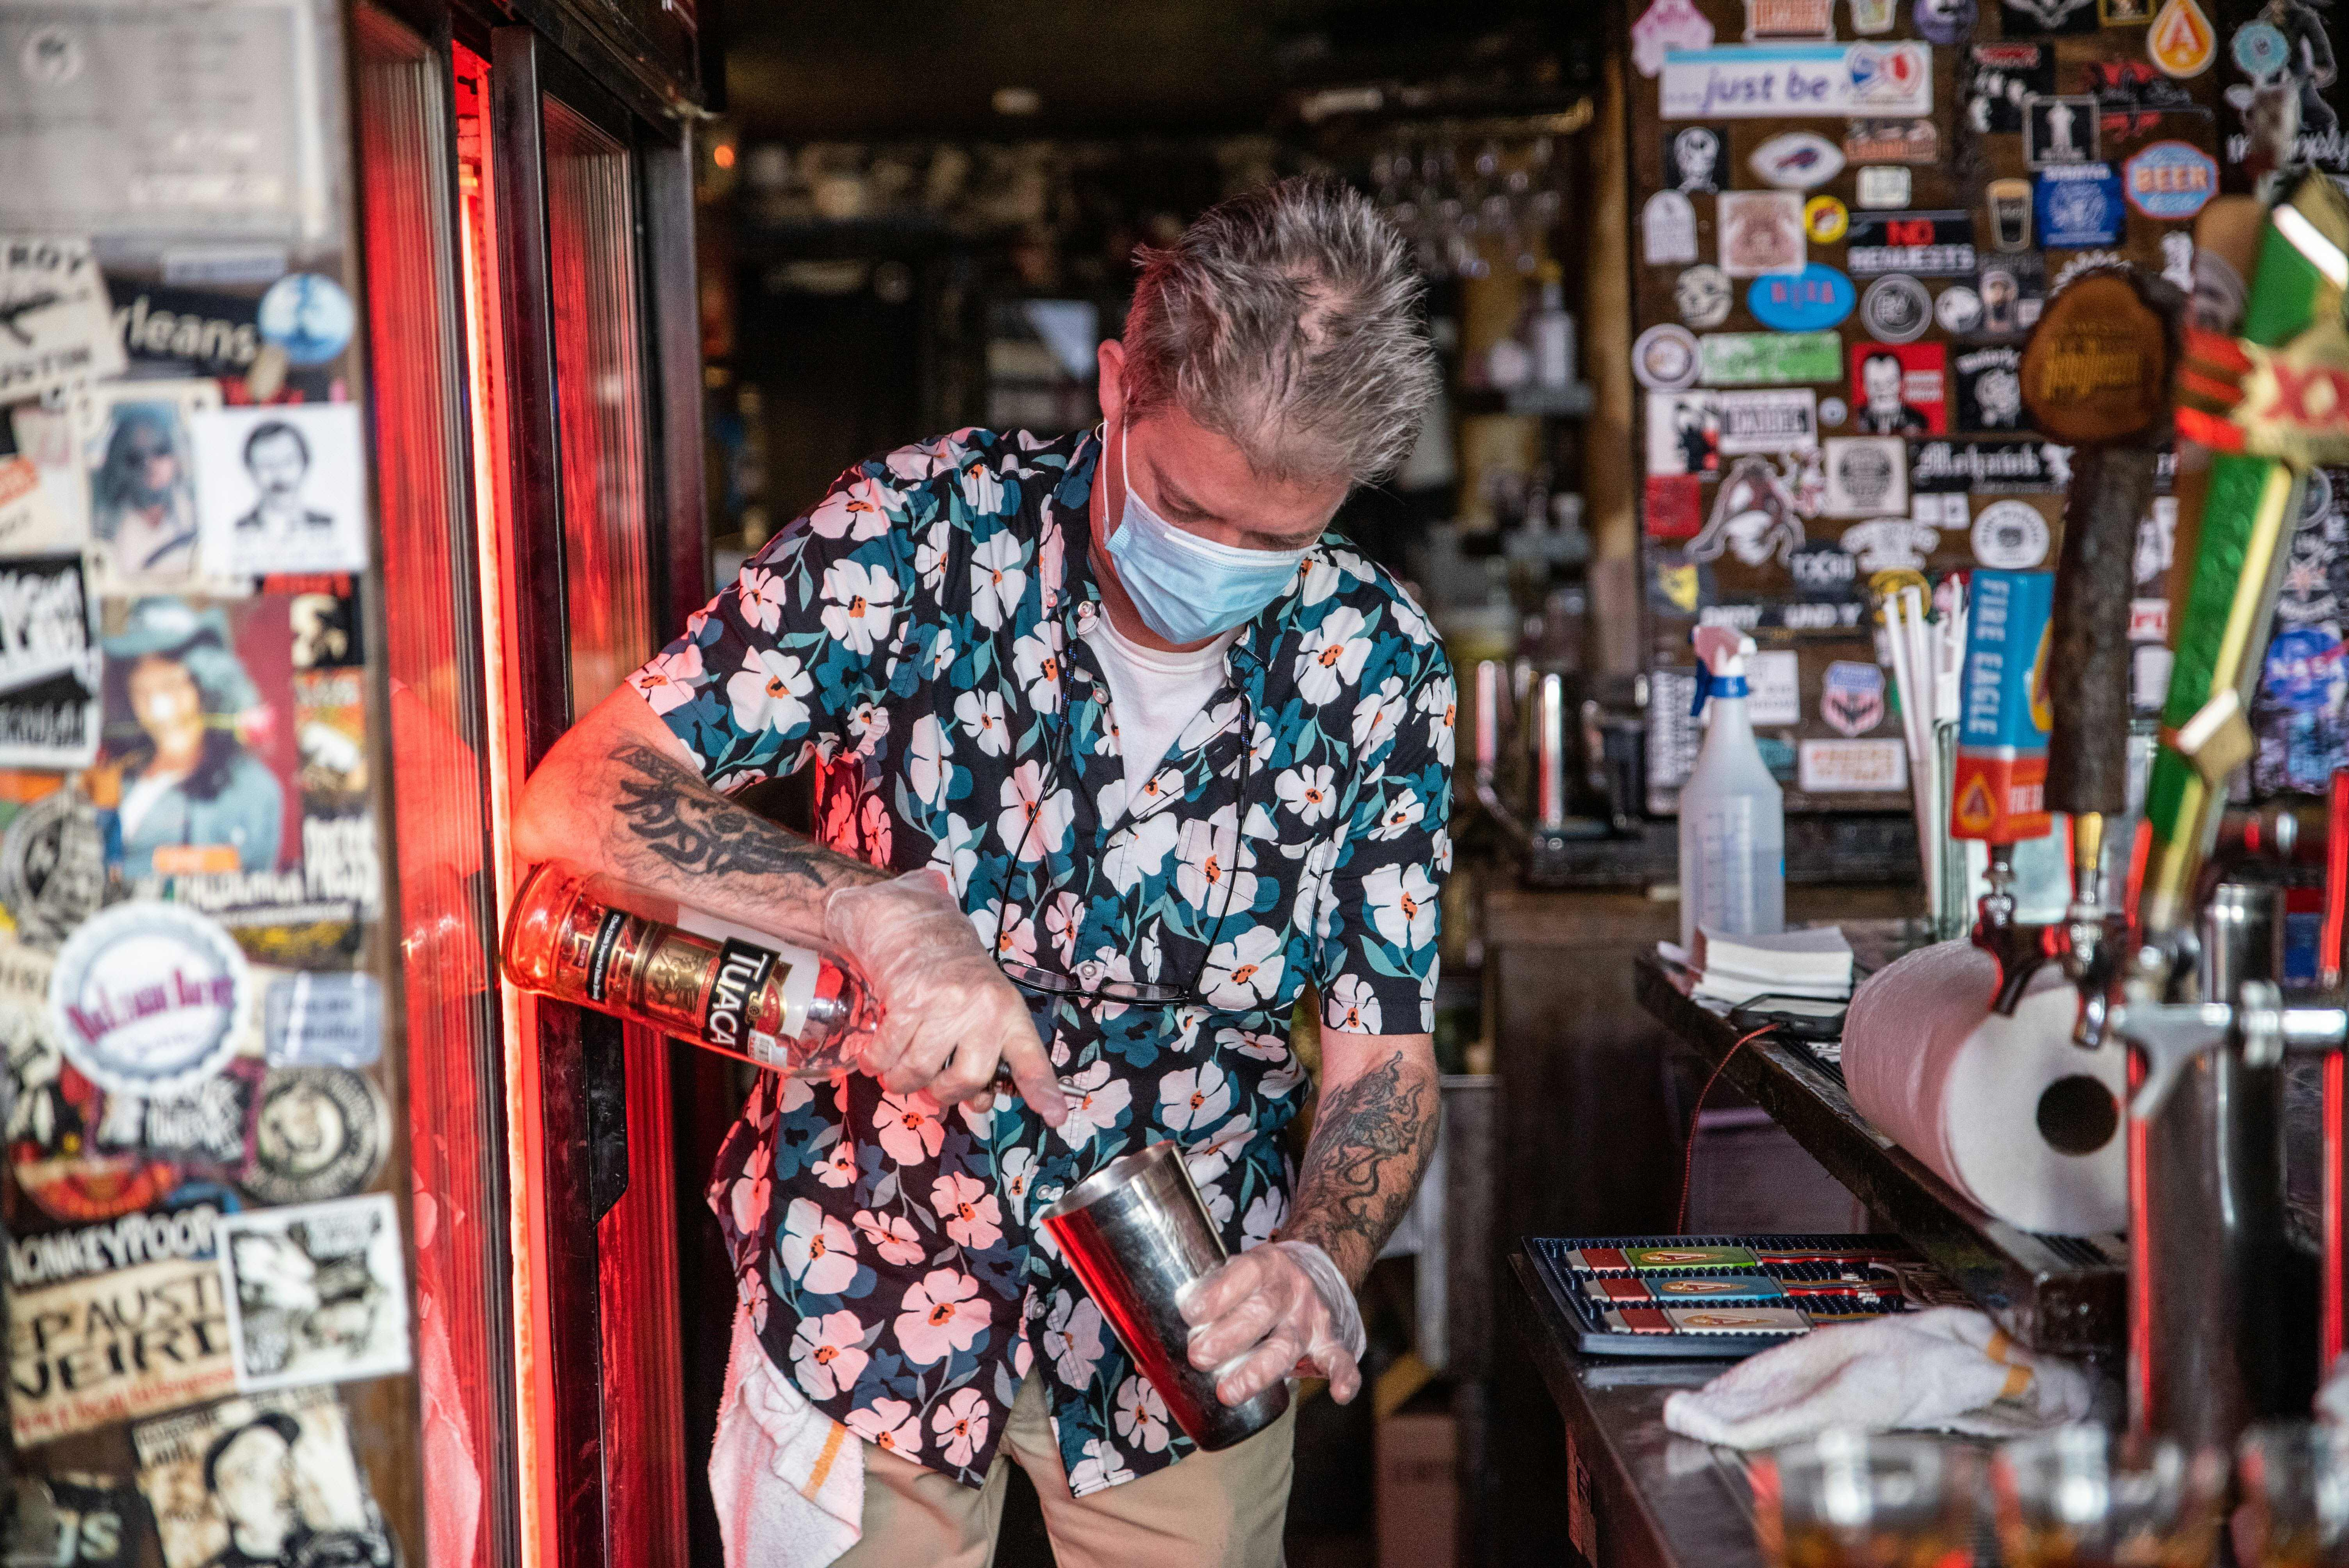 A bartender wearing a facemask makes a drink at a restaurant in Austin, Texas, June 26, 2020. - Texas Governor Greg Abbott ordered bars to be closed by noon on June 26 and for restaurants to be reduced to 50% occupancy. Coronavirus cases in Texas have spiked in recent weeks after being one of the first states to begin reopening. (Photo by SERGIO FLORES/AFP via Getty Images)